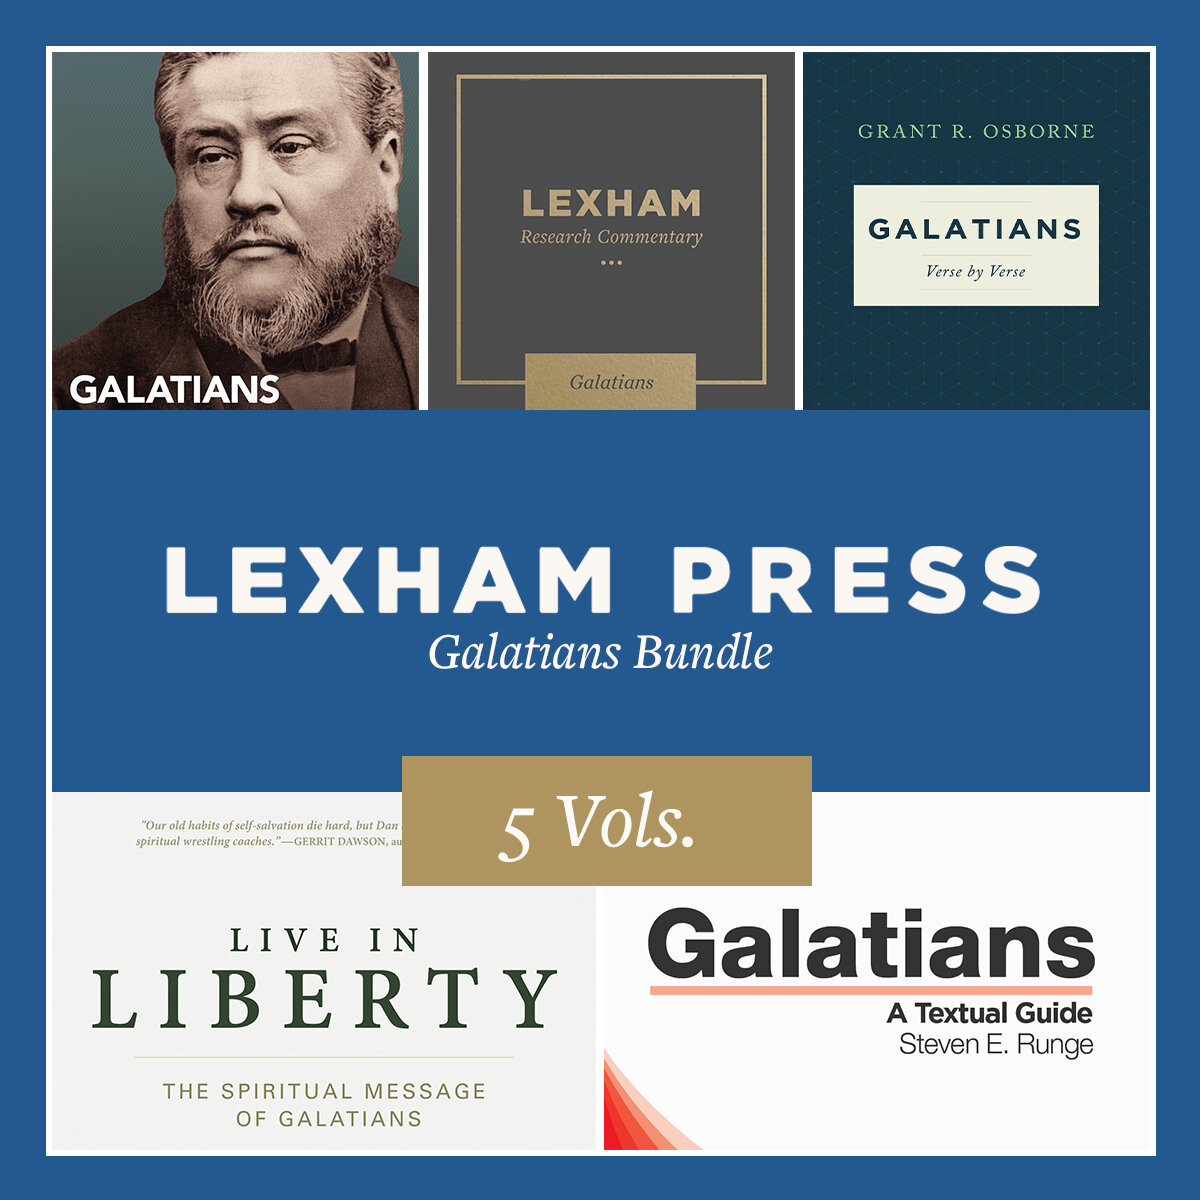 Lexham Press Galatians Bundle (5 vols.)